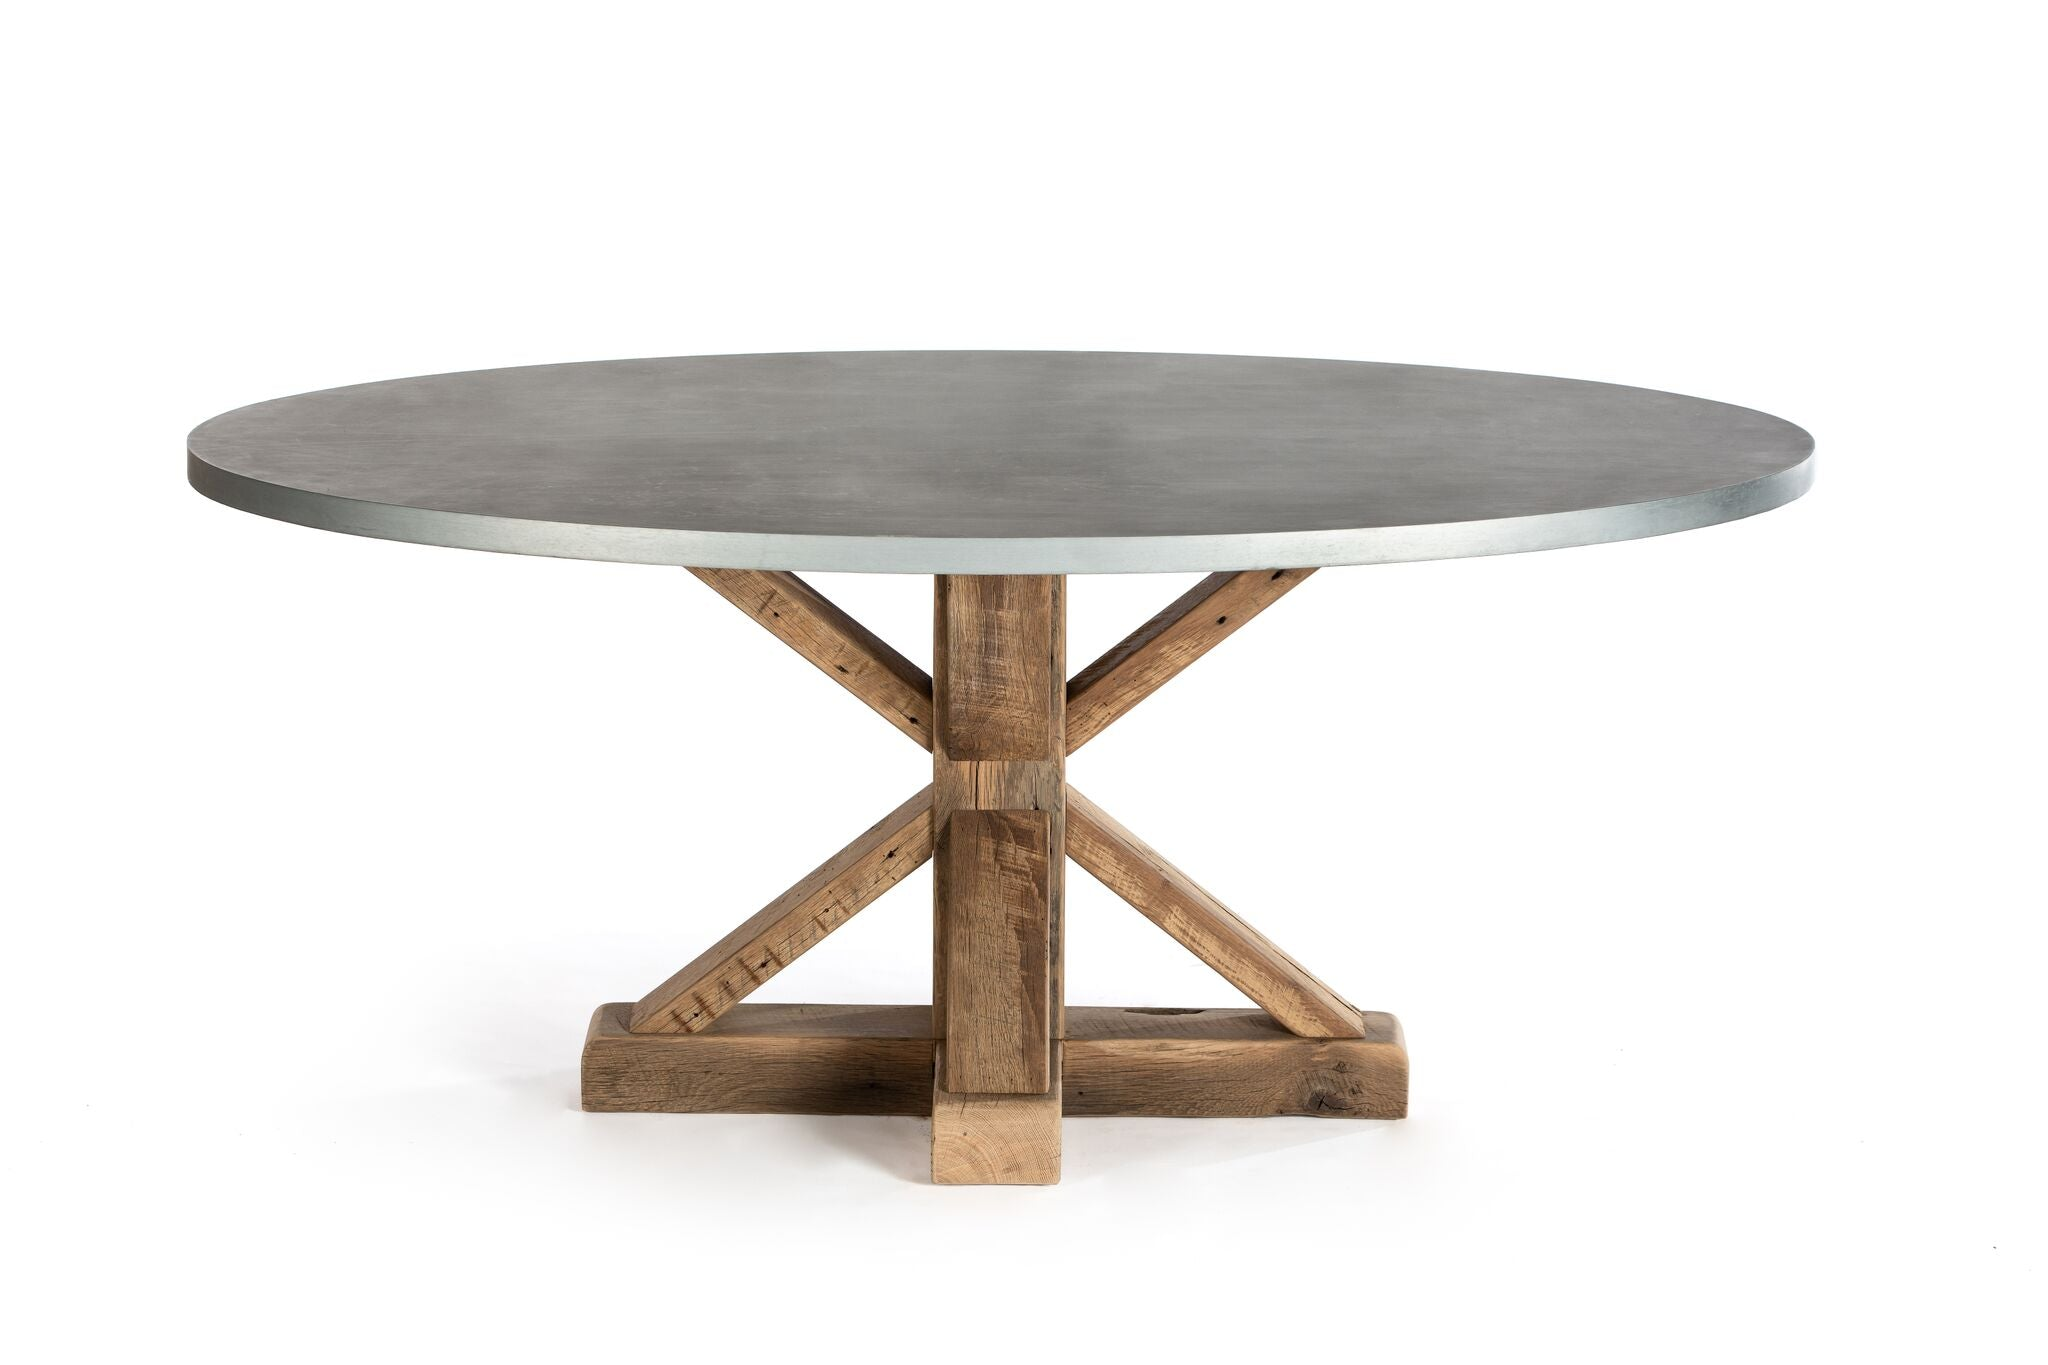 Zinc Oval Tables | Pedestal French Trestle | BLACKENED BRONZE | White Wash on Reclaimed Oak | CUSTOM SIZE L 72 W 37 H 30 | 2"